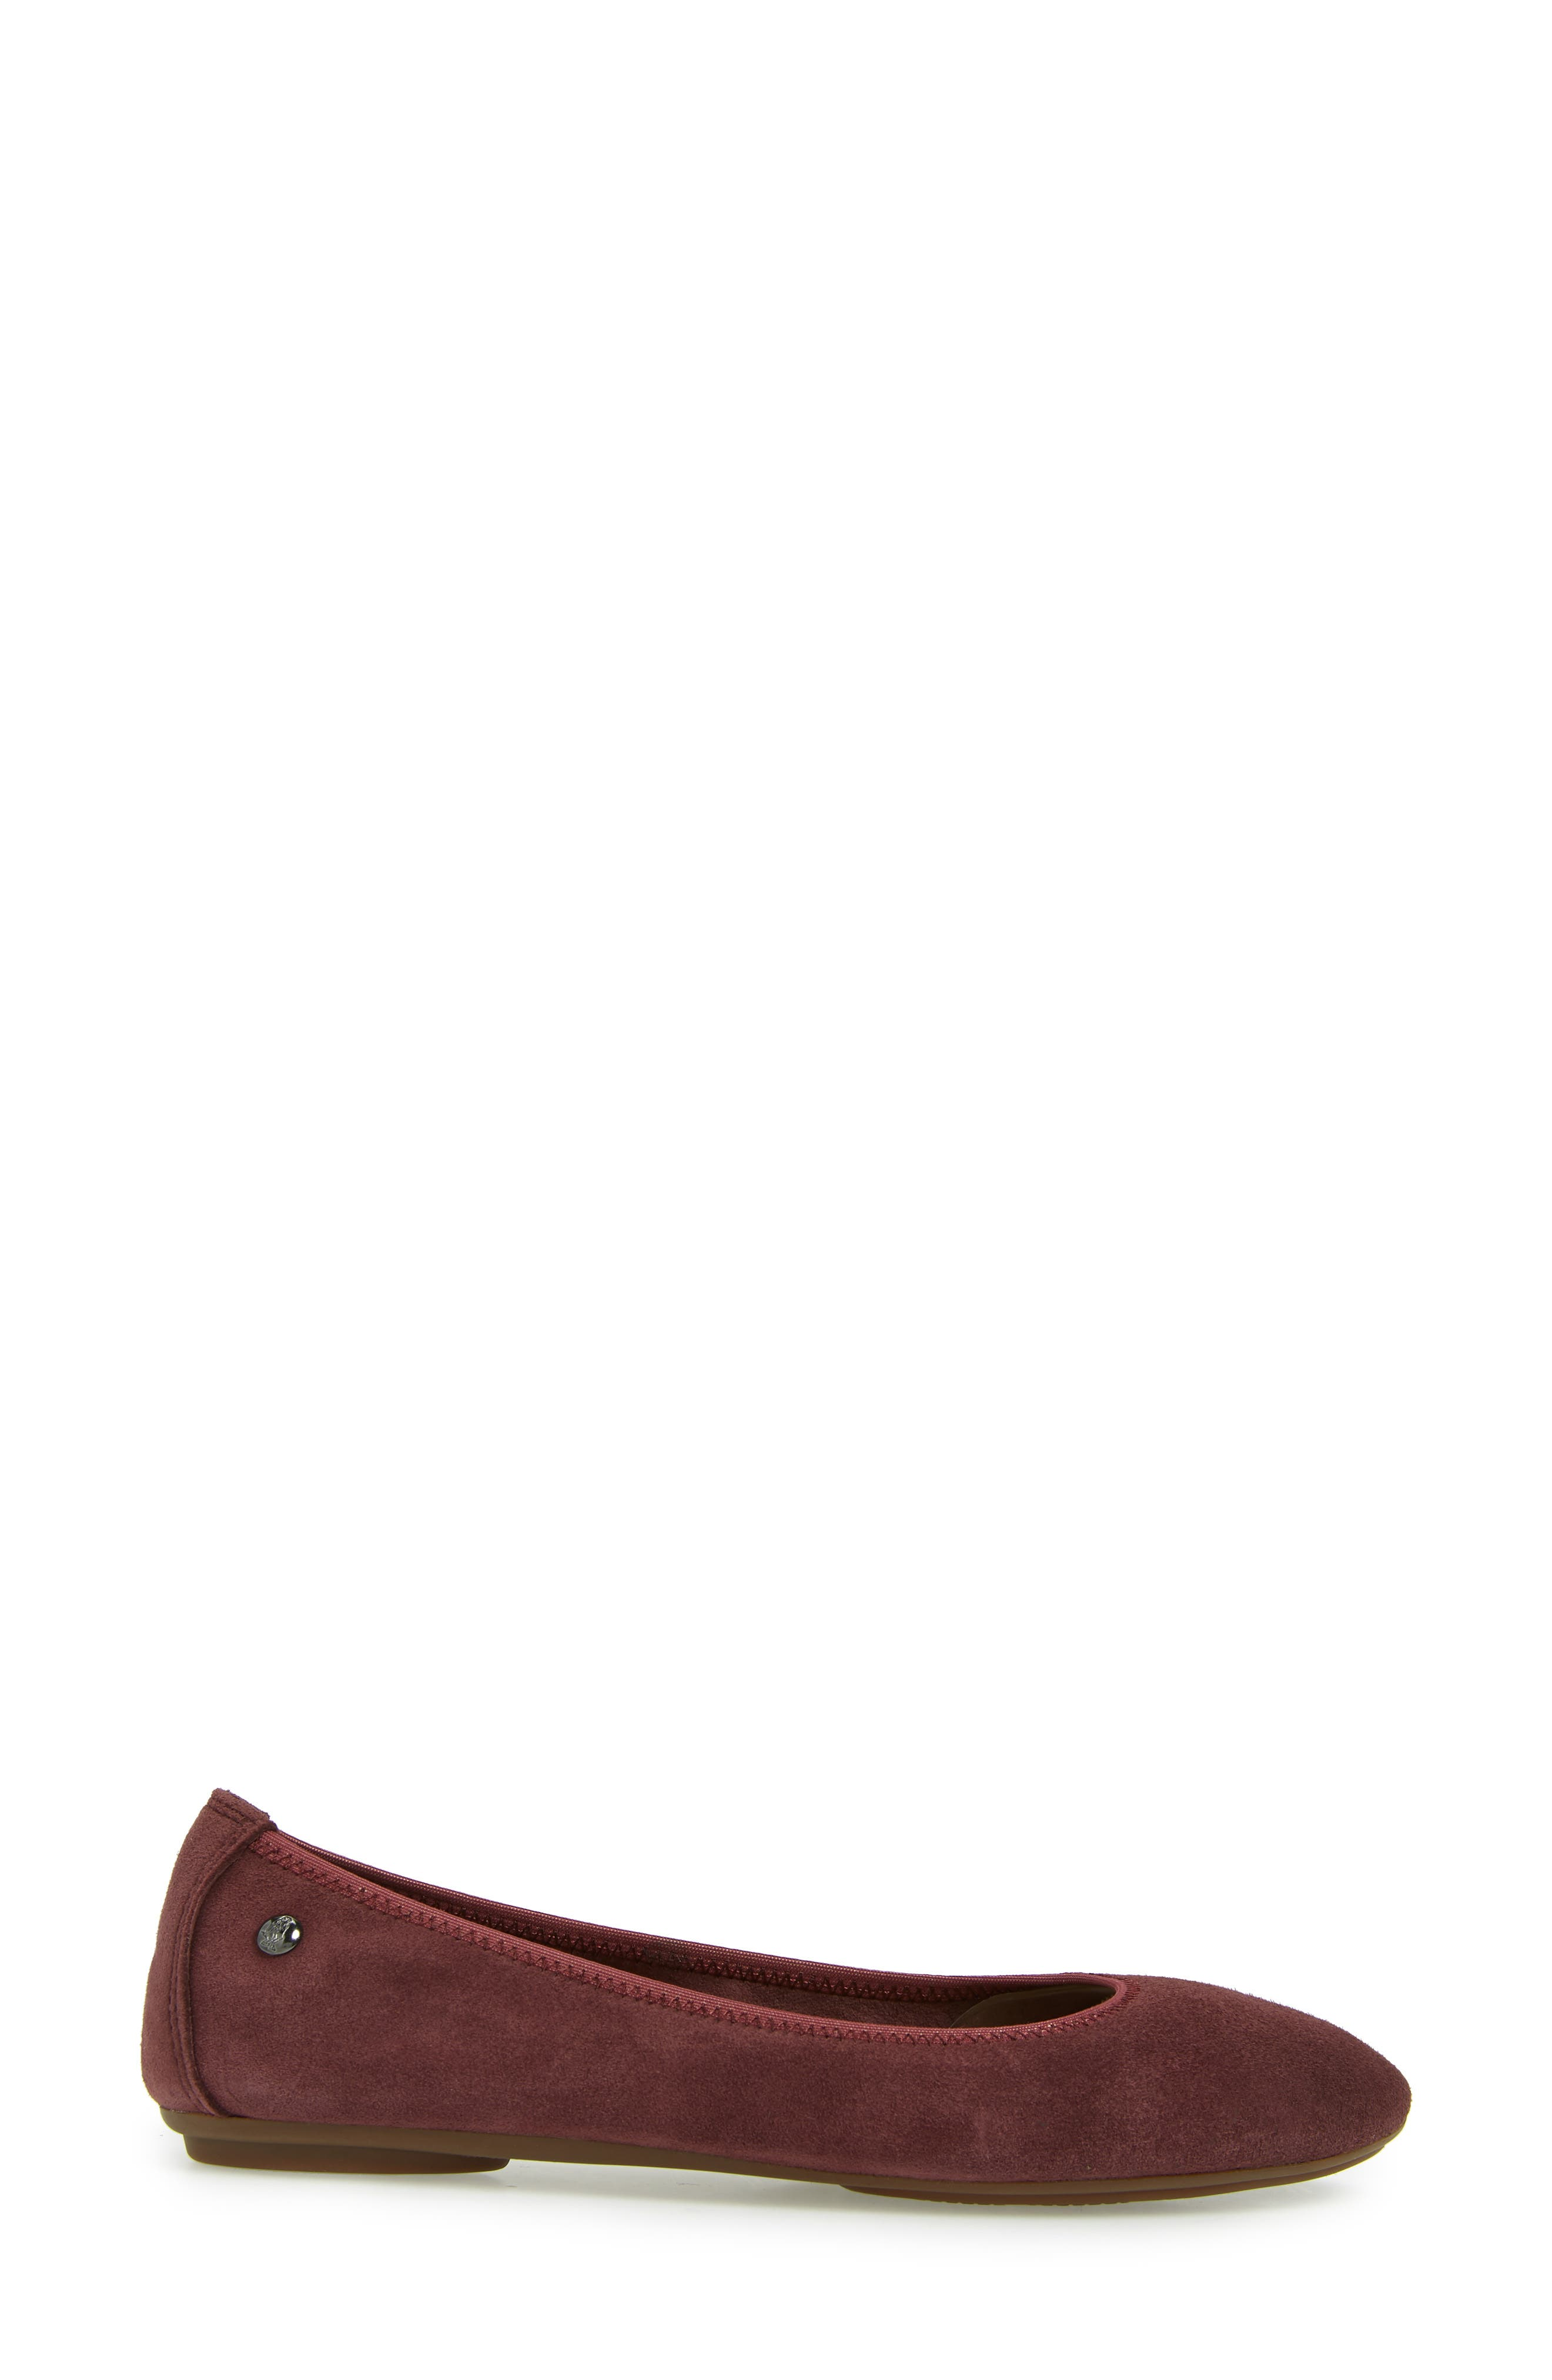 'Chaste' Ballet Flat,                             Alternate thumbnail 3, color,                             DARK WINE SUEDE